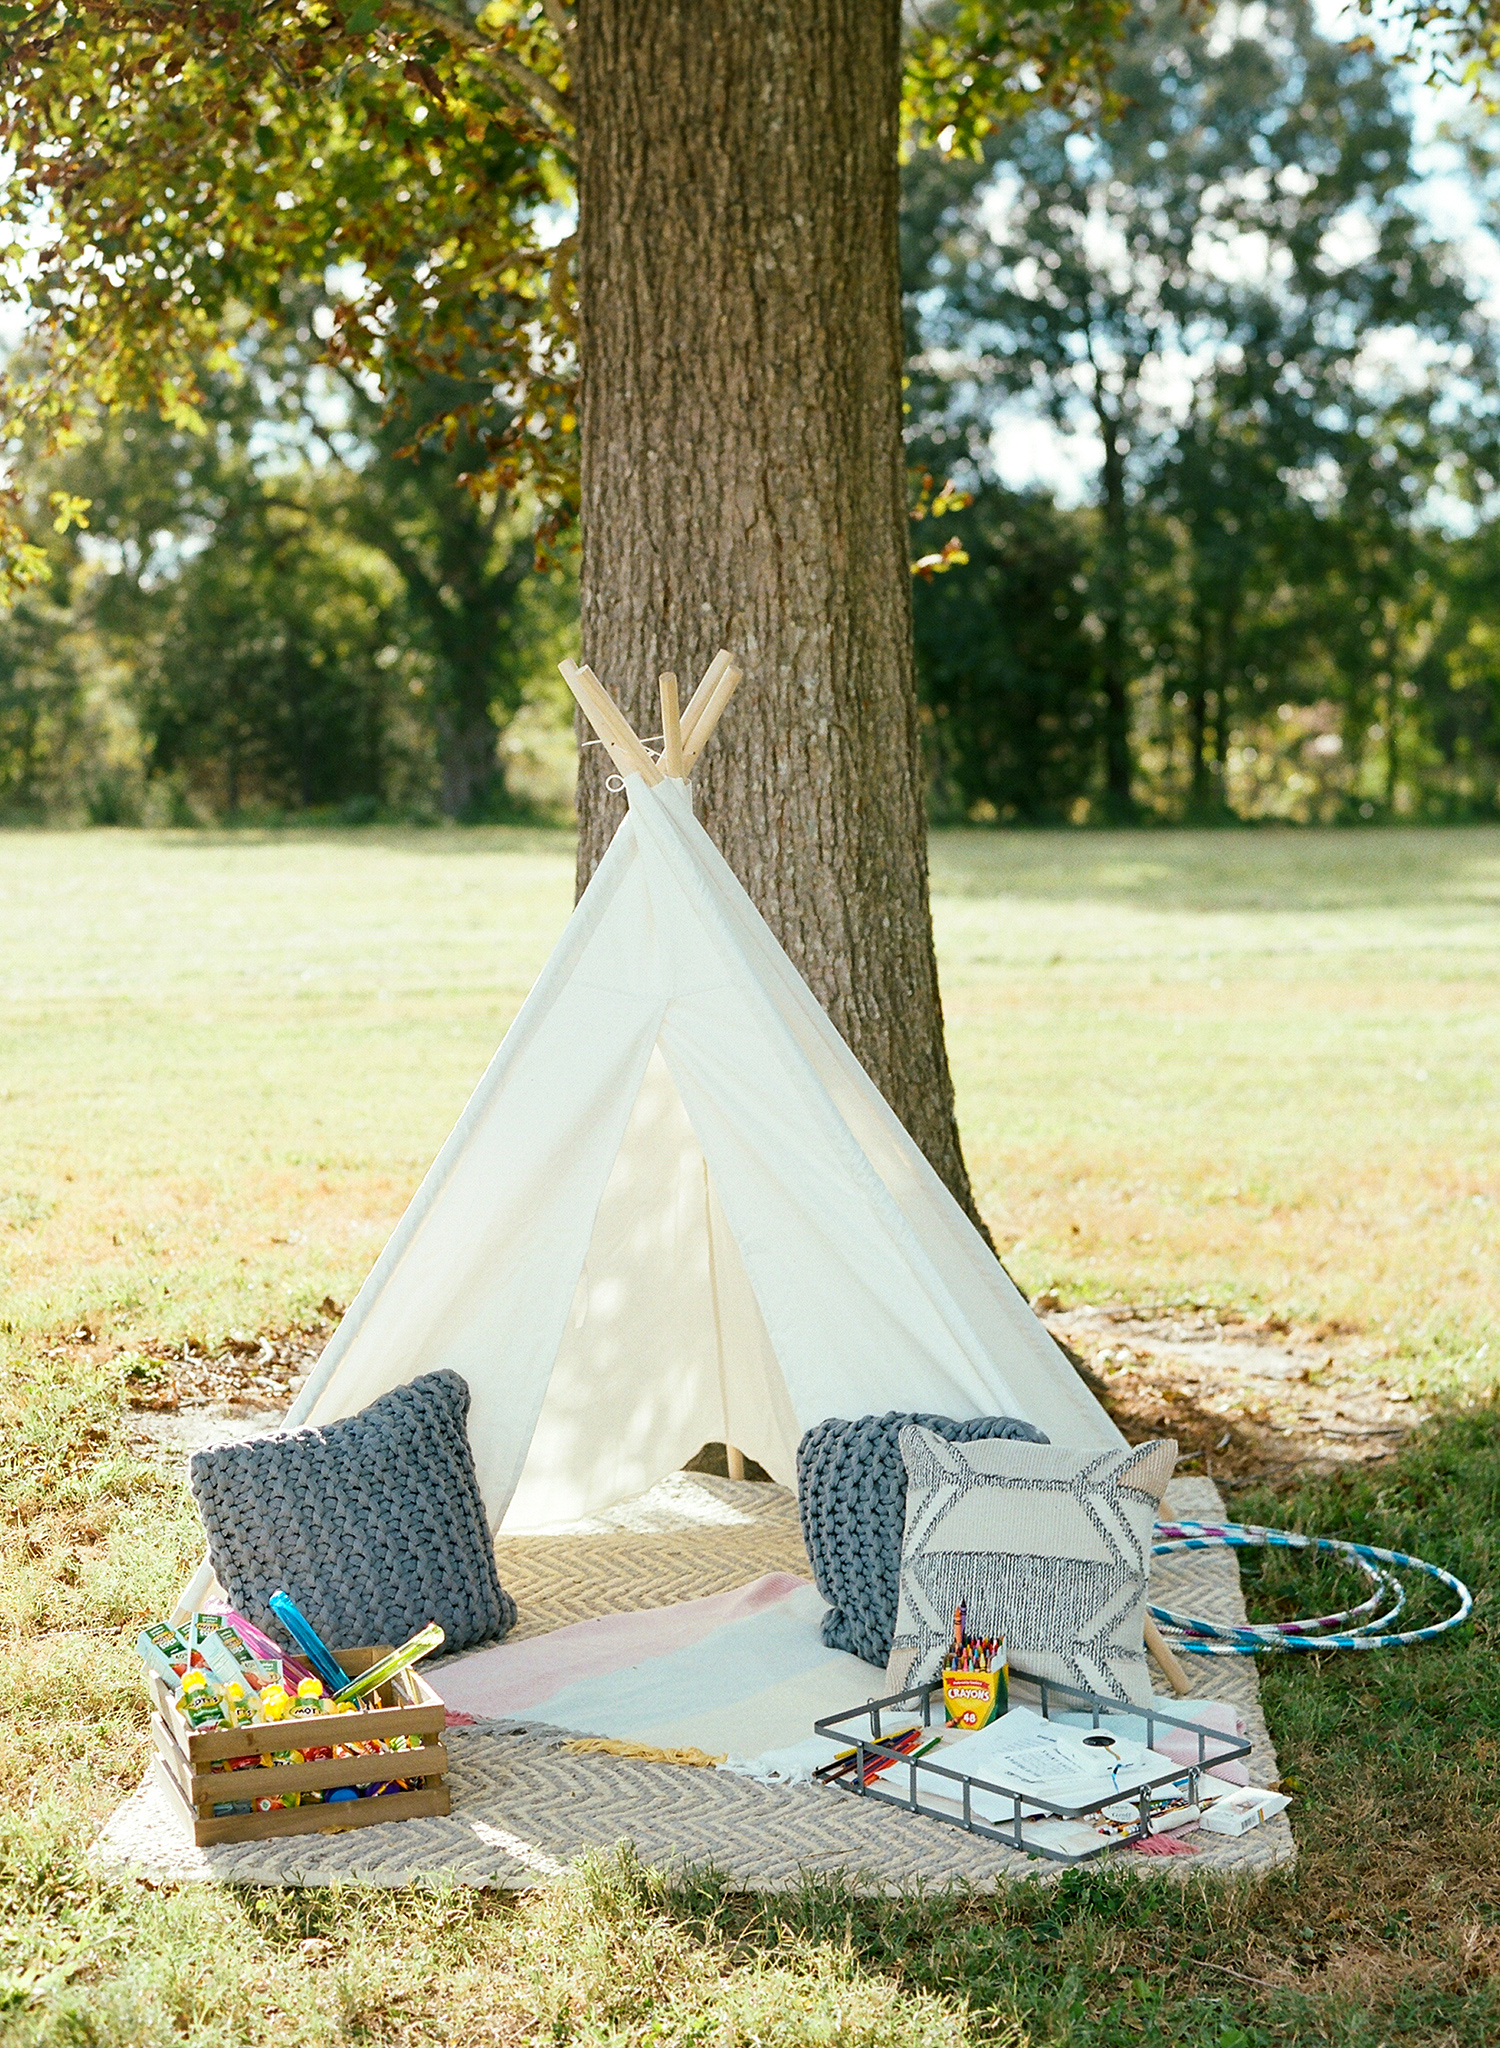 jen geoff wedding kids play tent